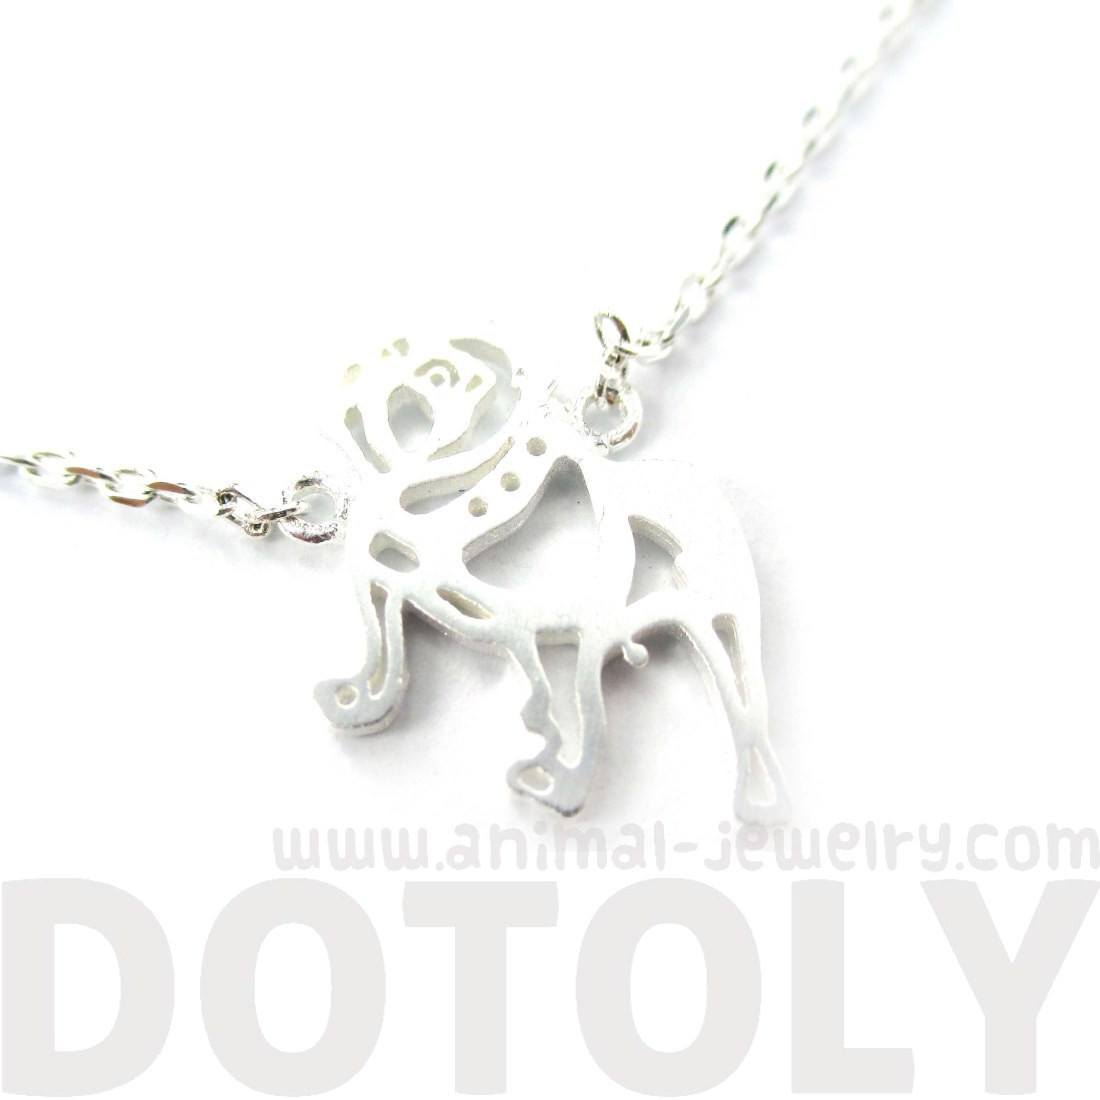 Classic Bulldog Cut Out Shaped Animal Pendant Necklace in Silver